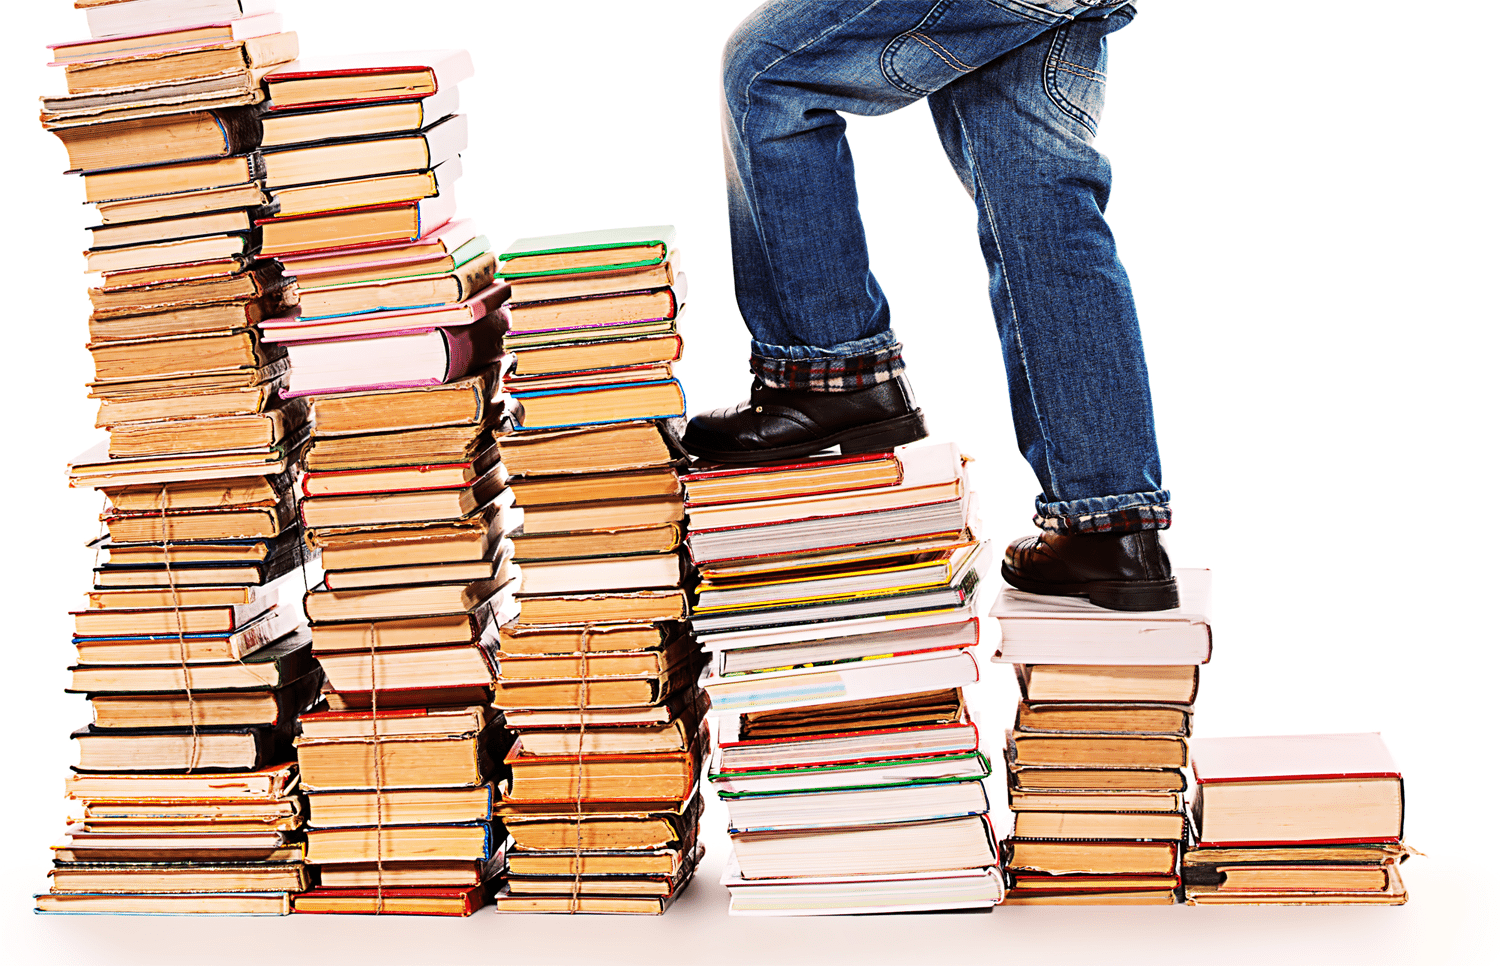 Climbing up towers of books: transitioning to the new school year